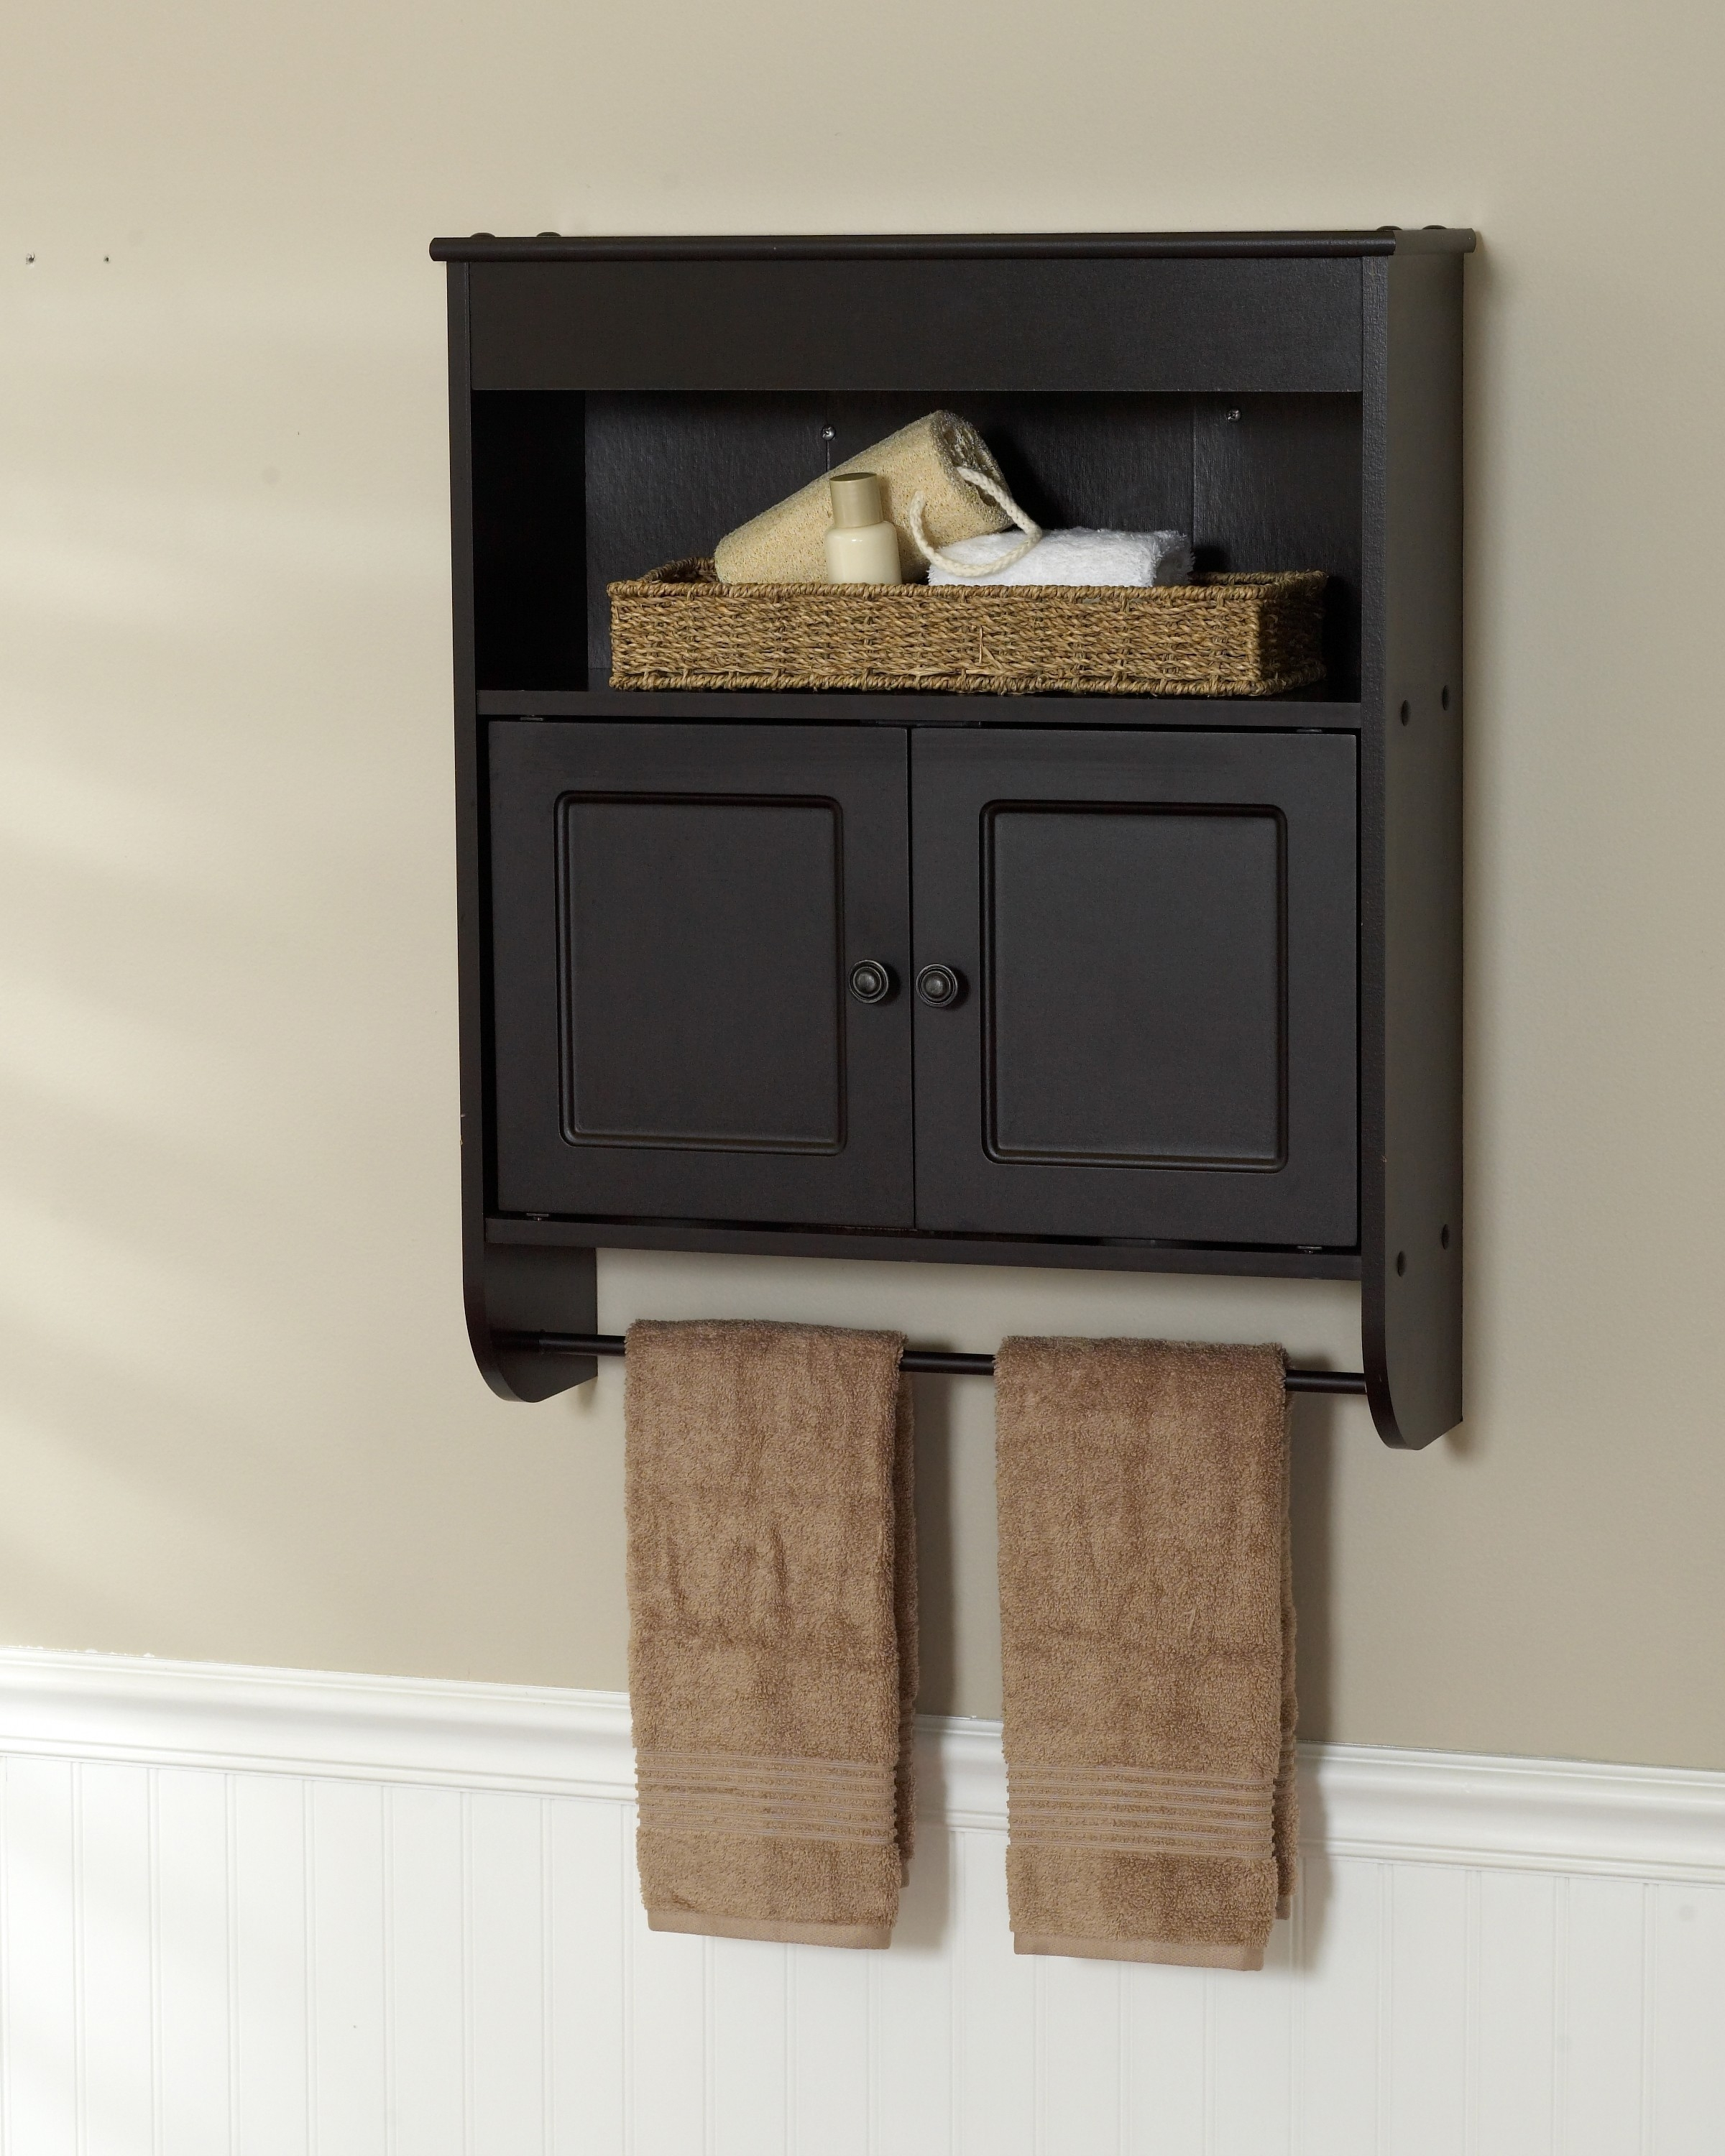 Bathroom Cabinet With Towel Rod